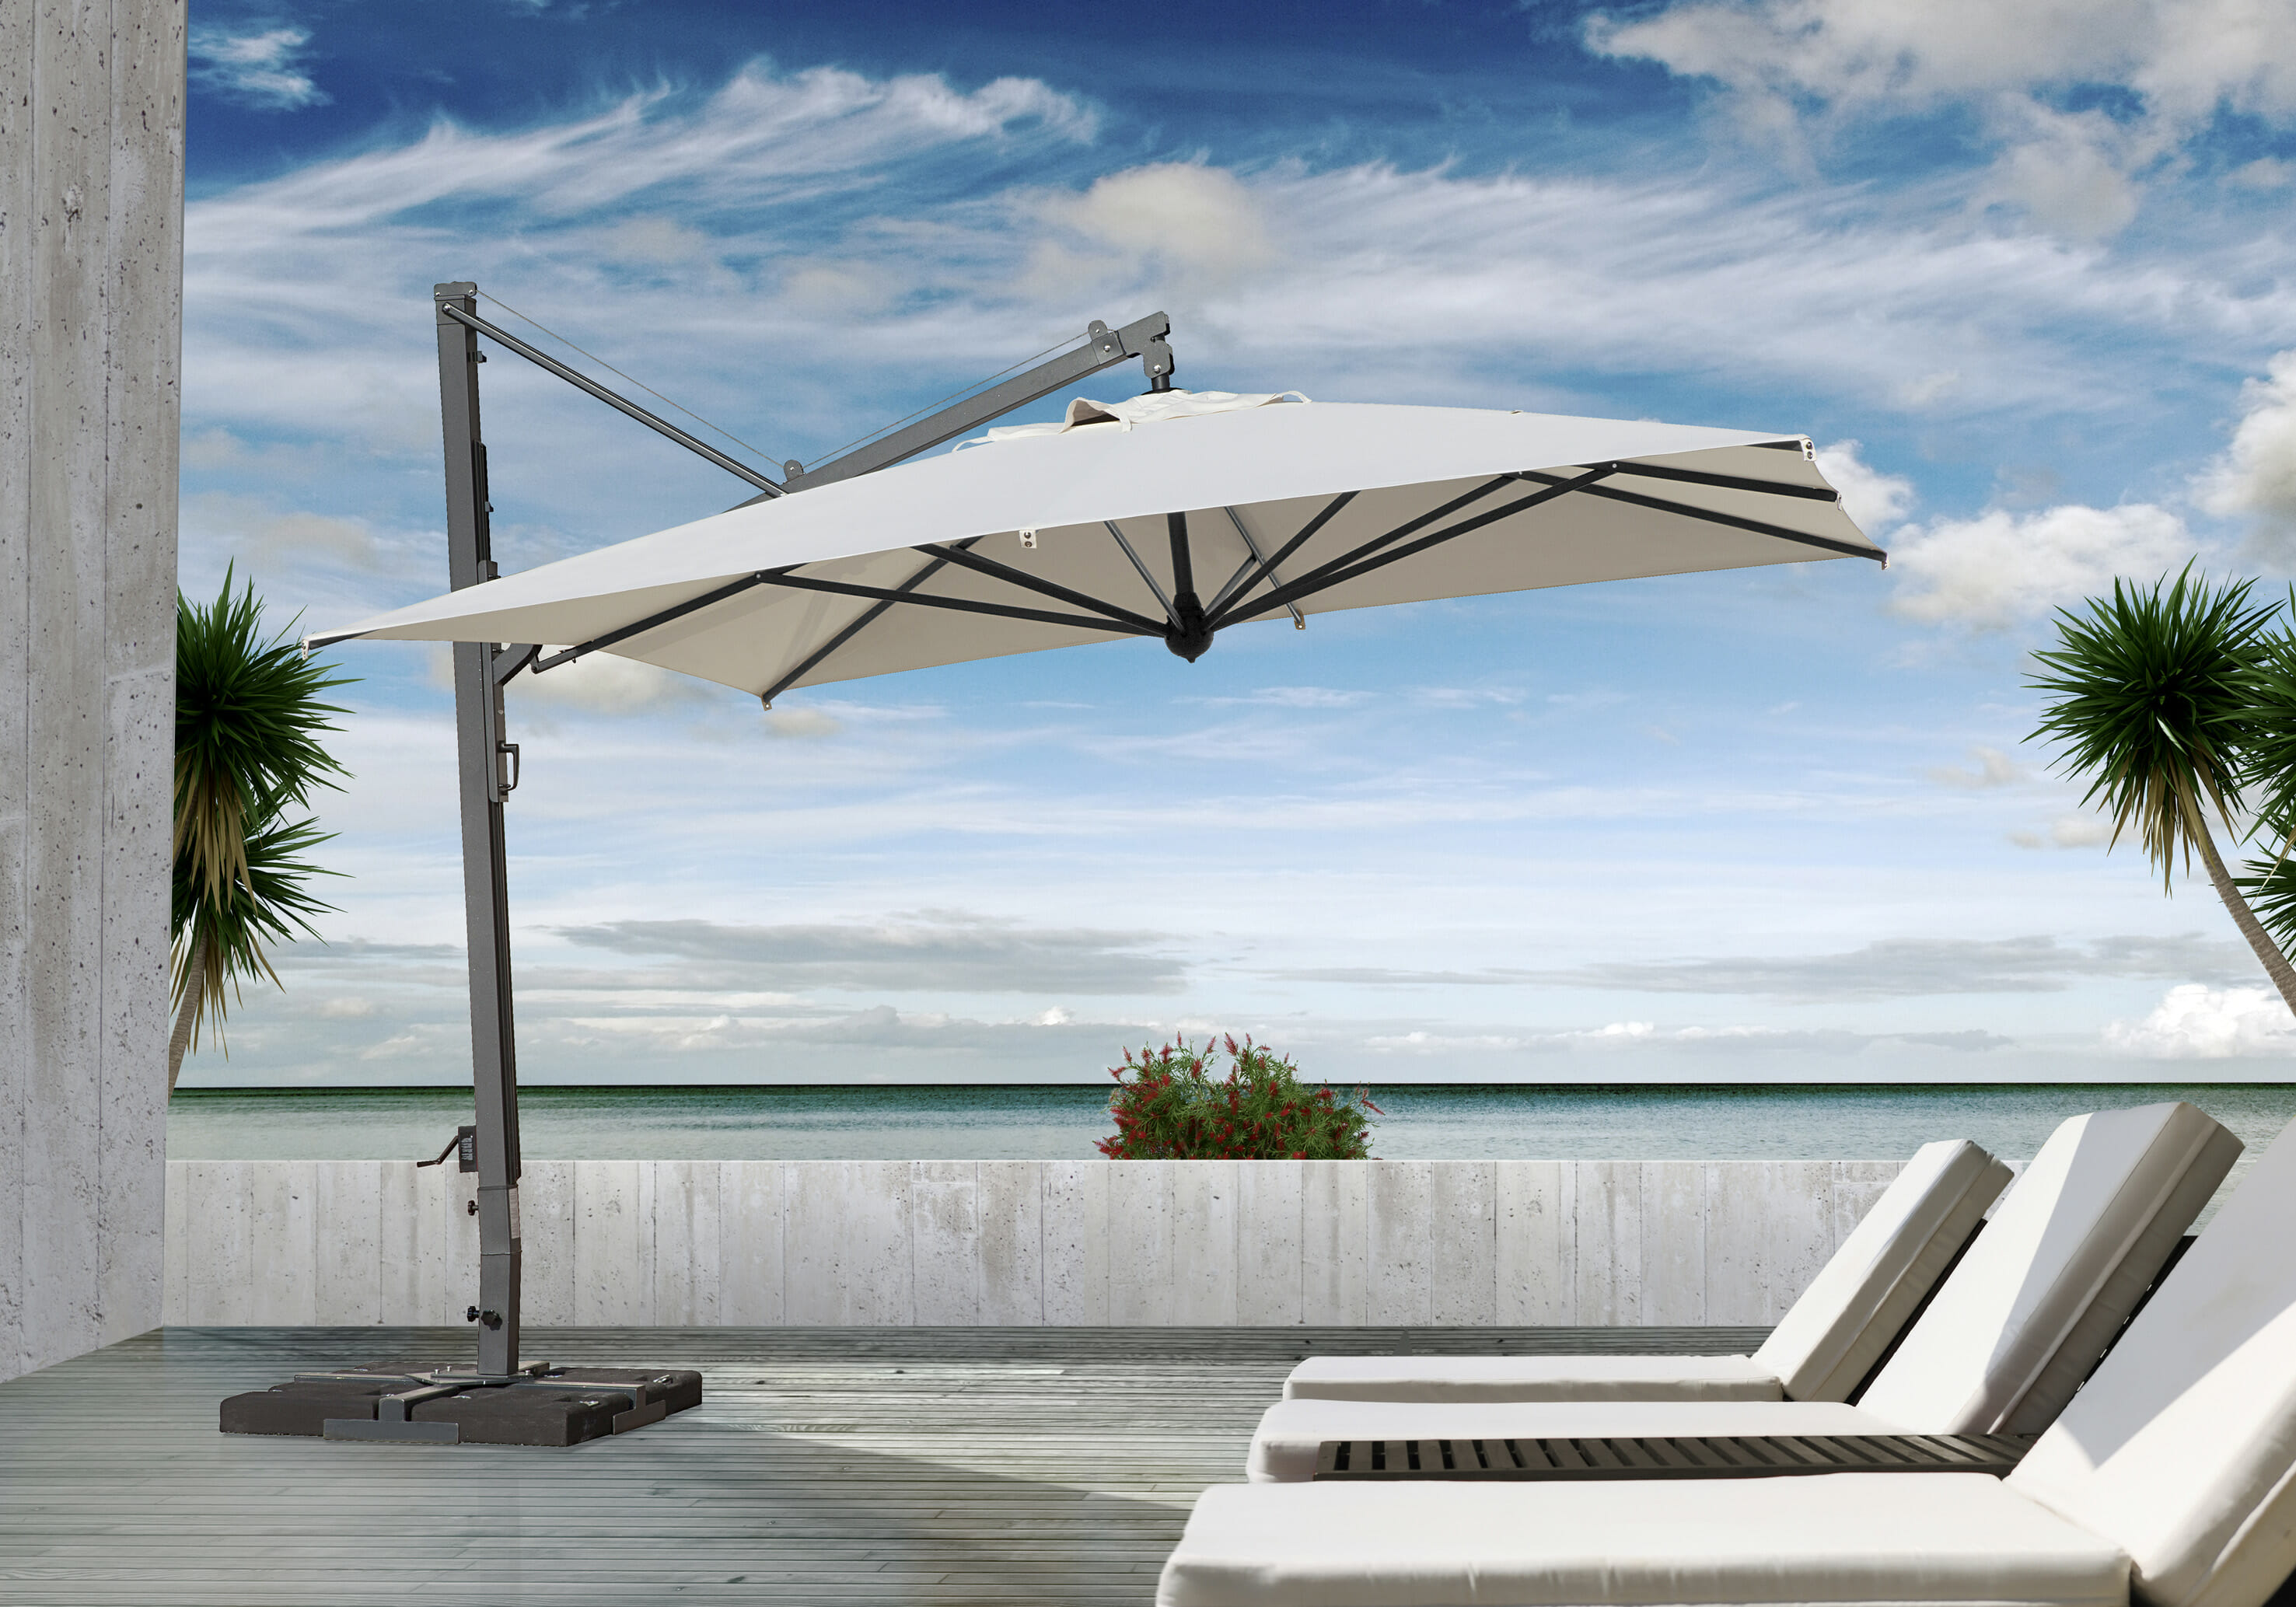 The Unique Cantilevered Umbrella With Retractable Closing System Makes A Strong Visual Statement While Providing Maximum Shade In Outdoor Areas